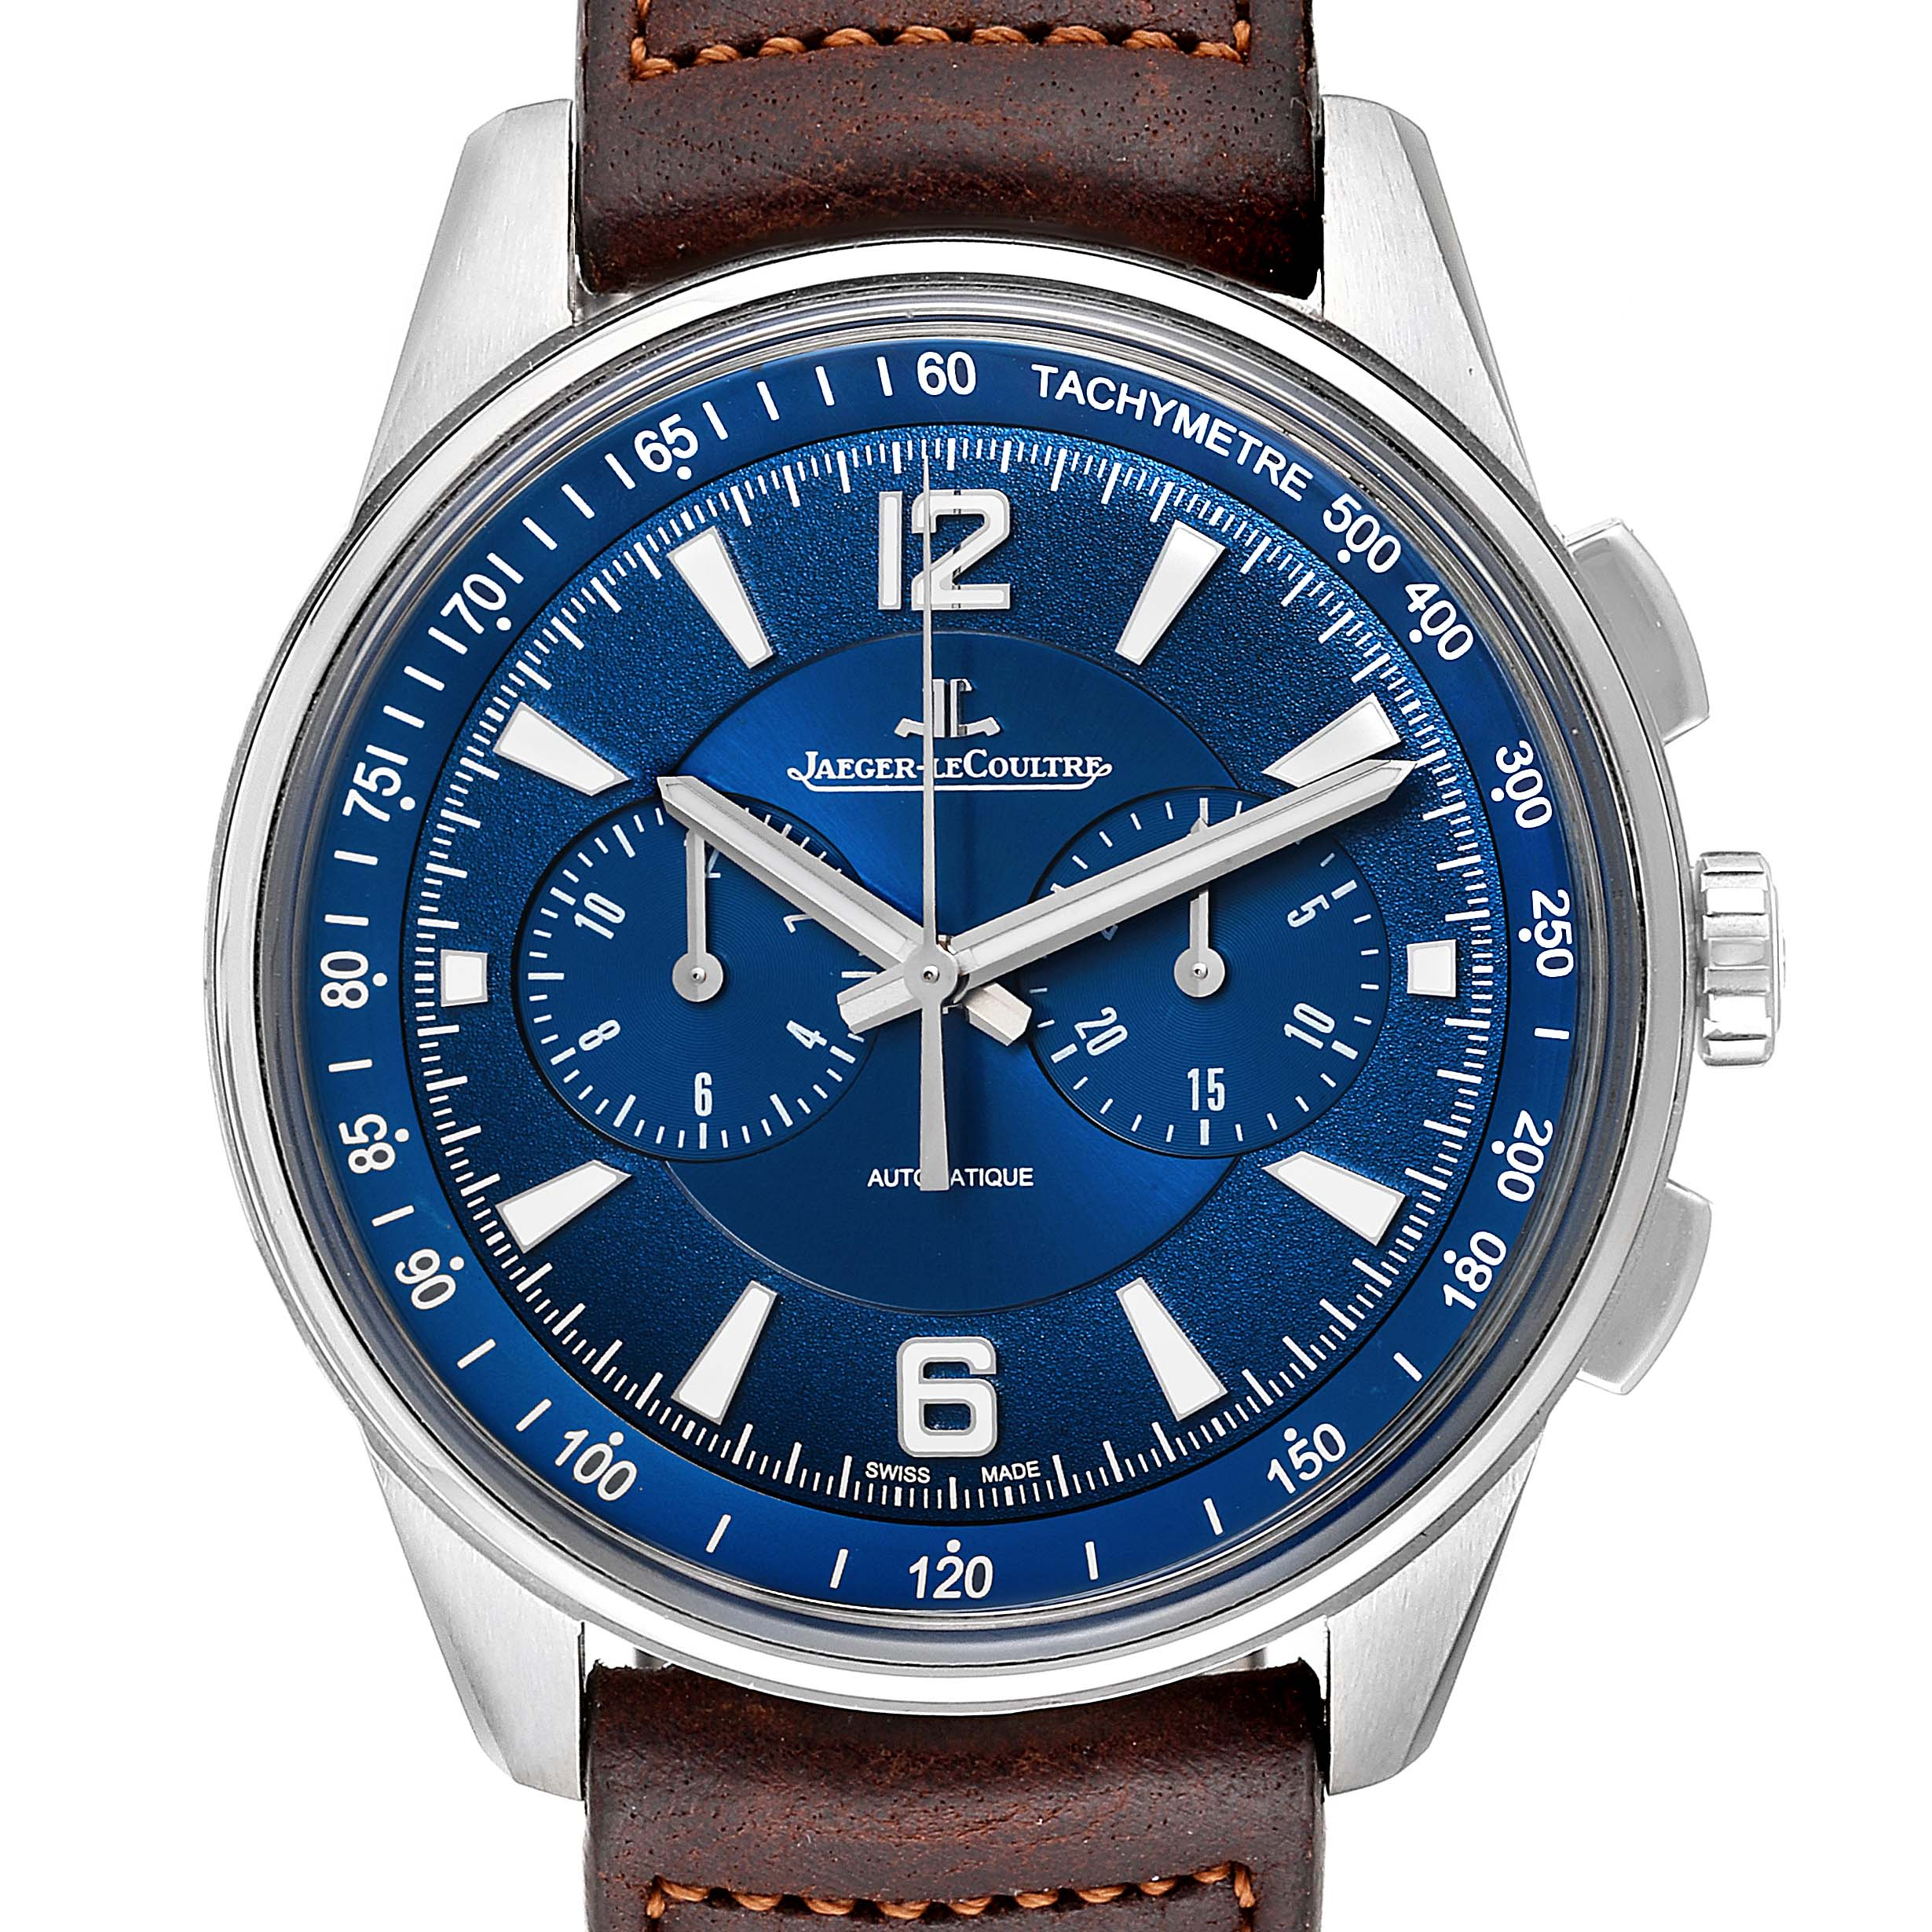 Photo of Jaeger Lecoultre Polaris Blue Dial Chronograph Steel Mens Watch 842.8.C1.s